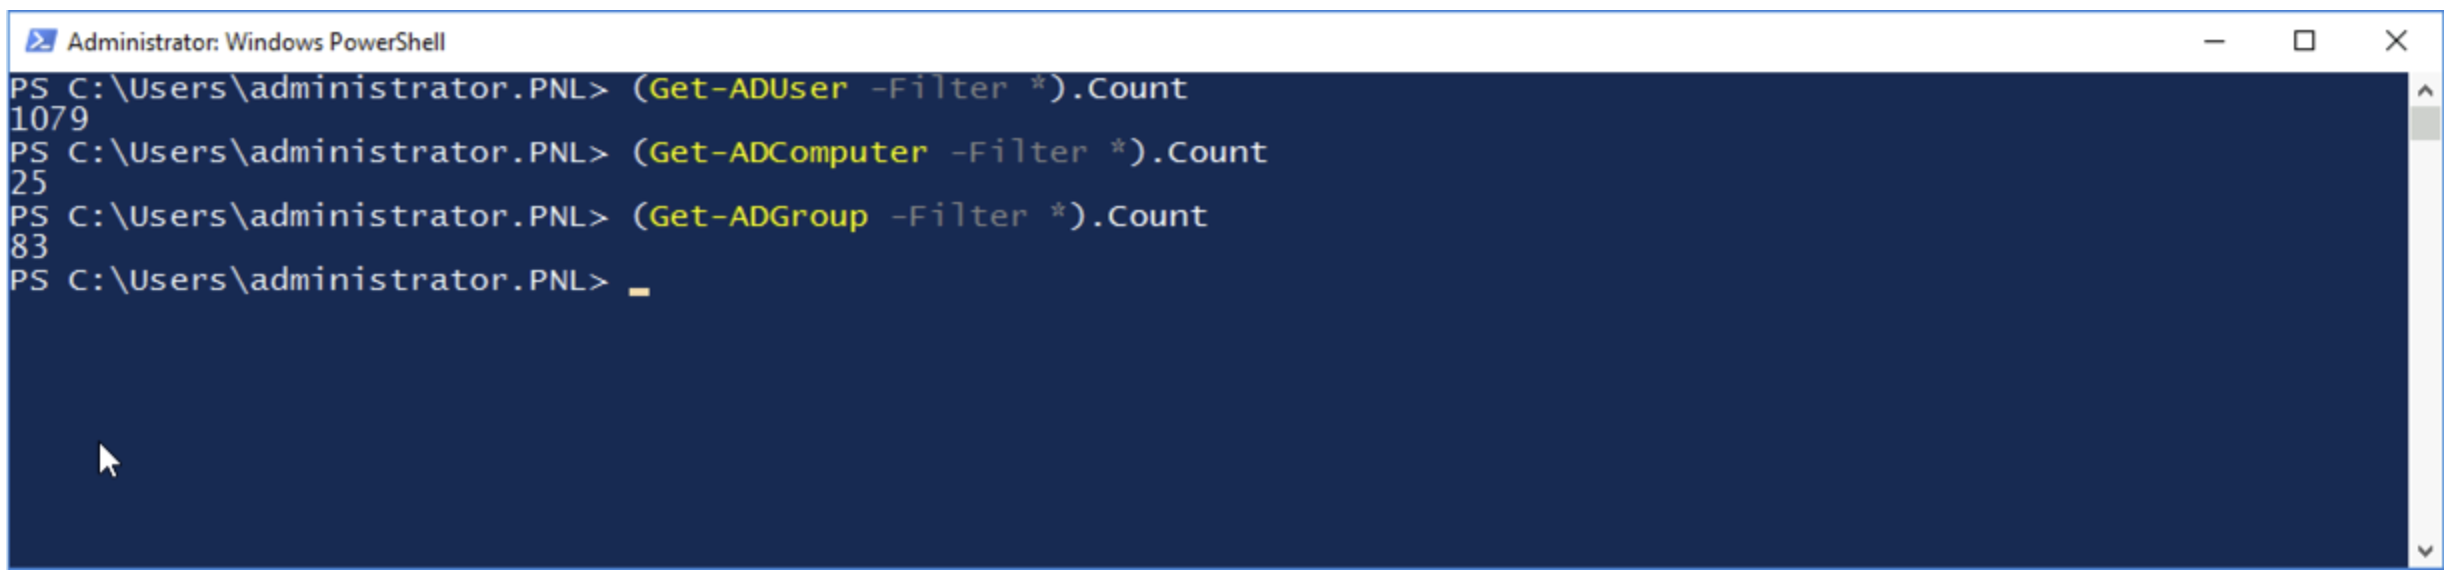 PowerShell Command for User Count, Computer Count, and Group Count in Active Directory